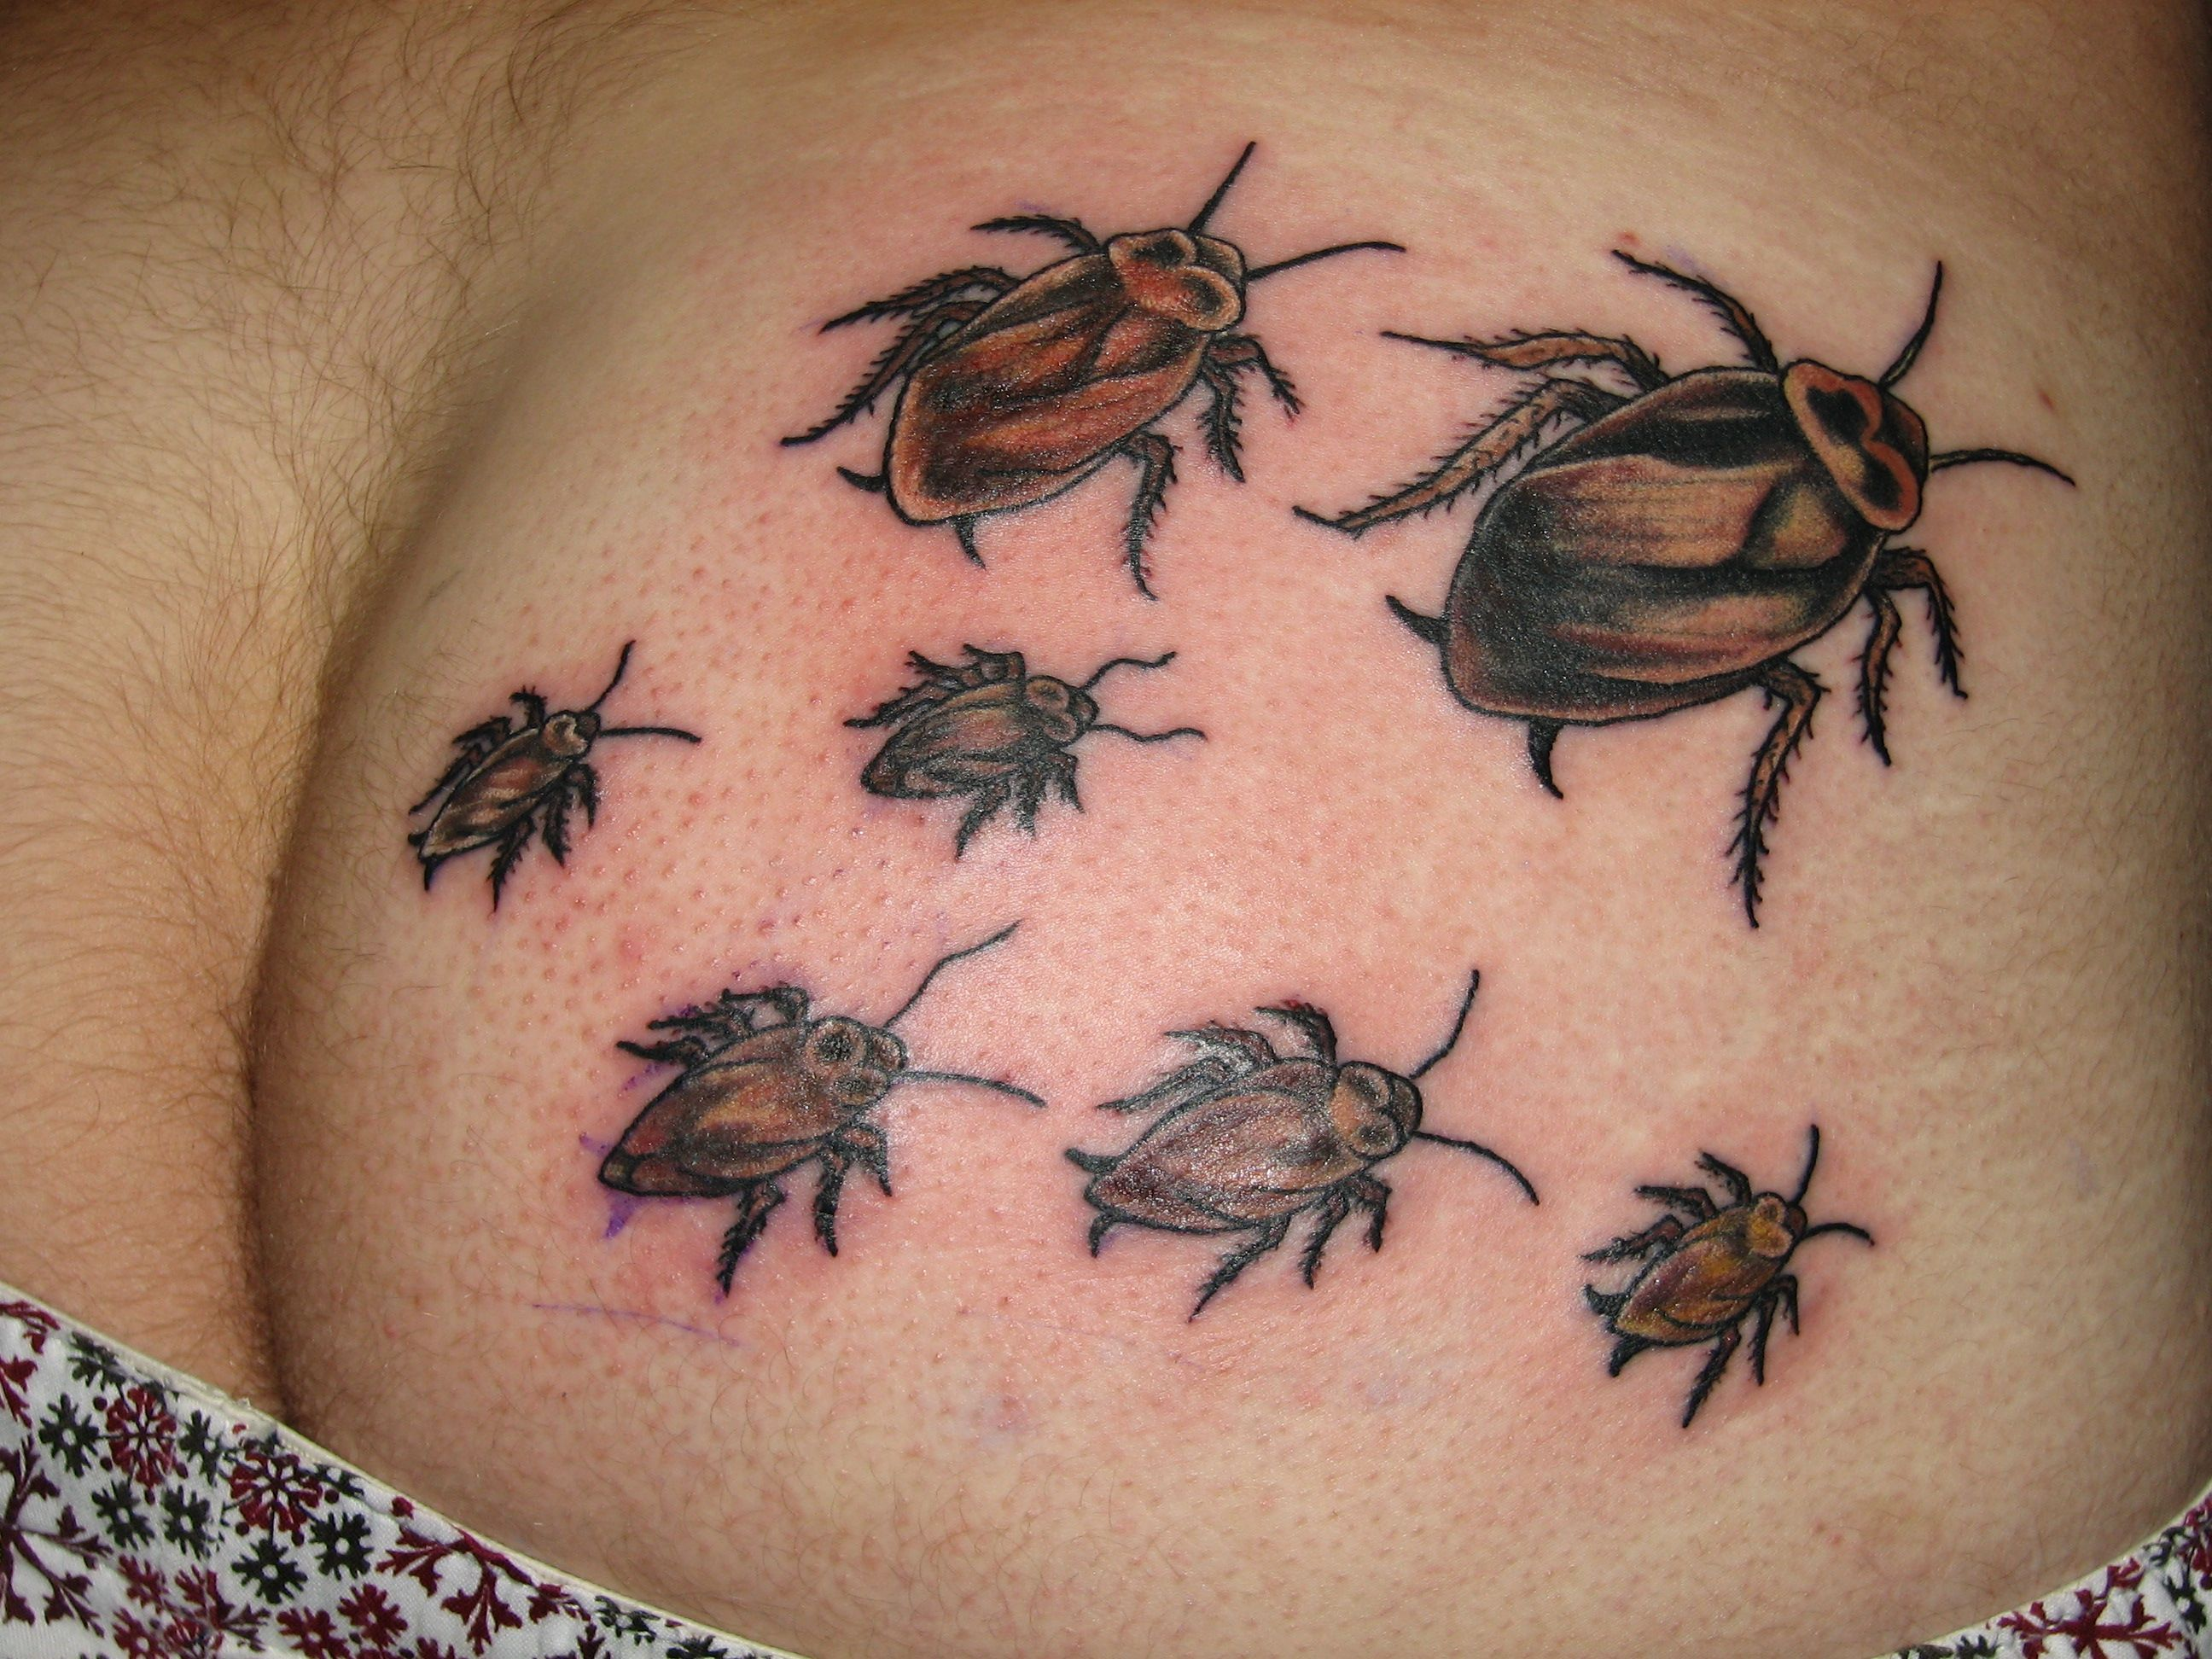 What were they thinking? | Ink It! | Pinterest | Roaches, Horrible ...